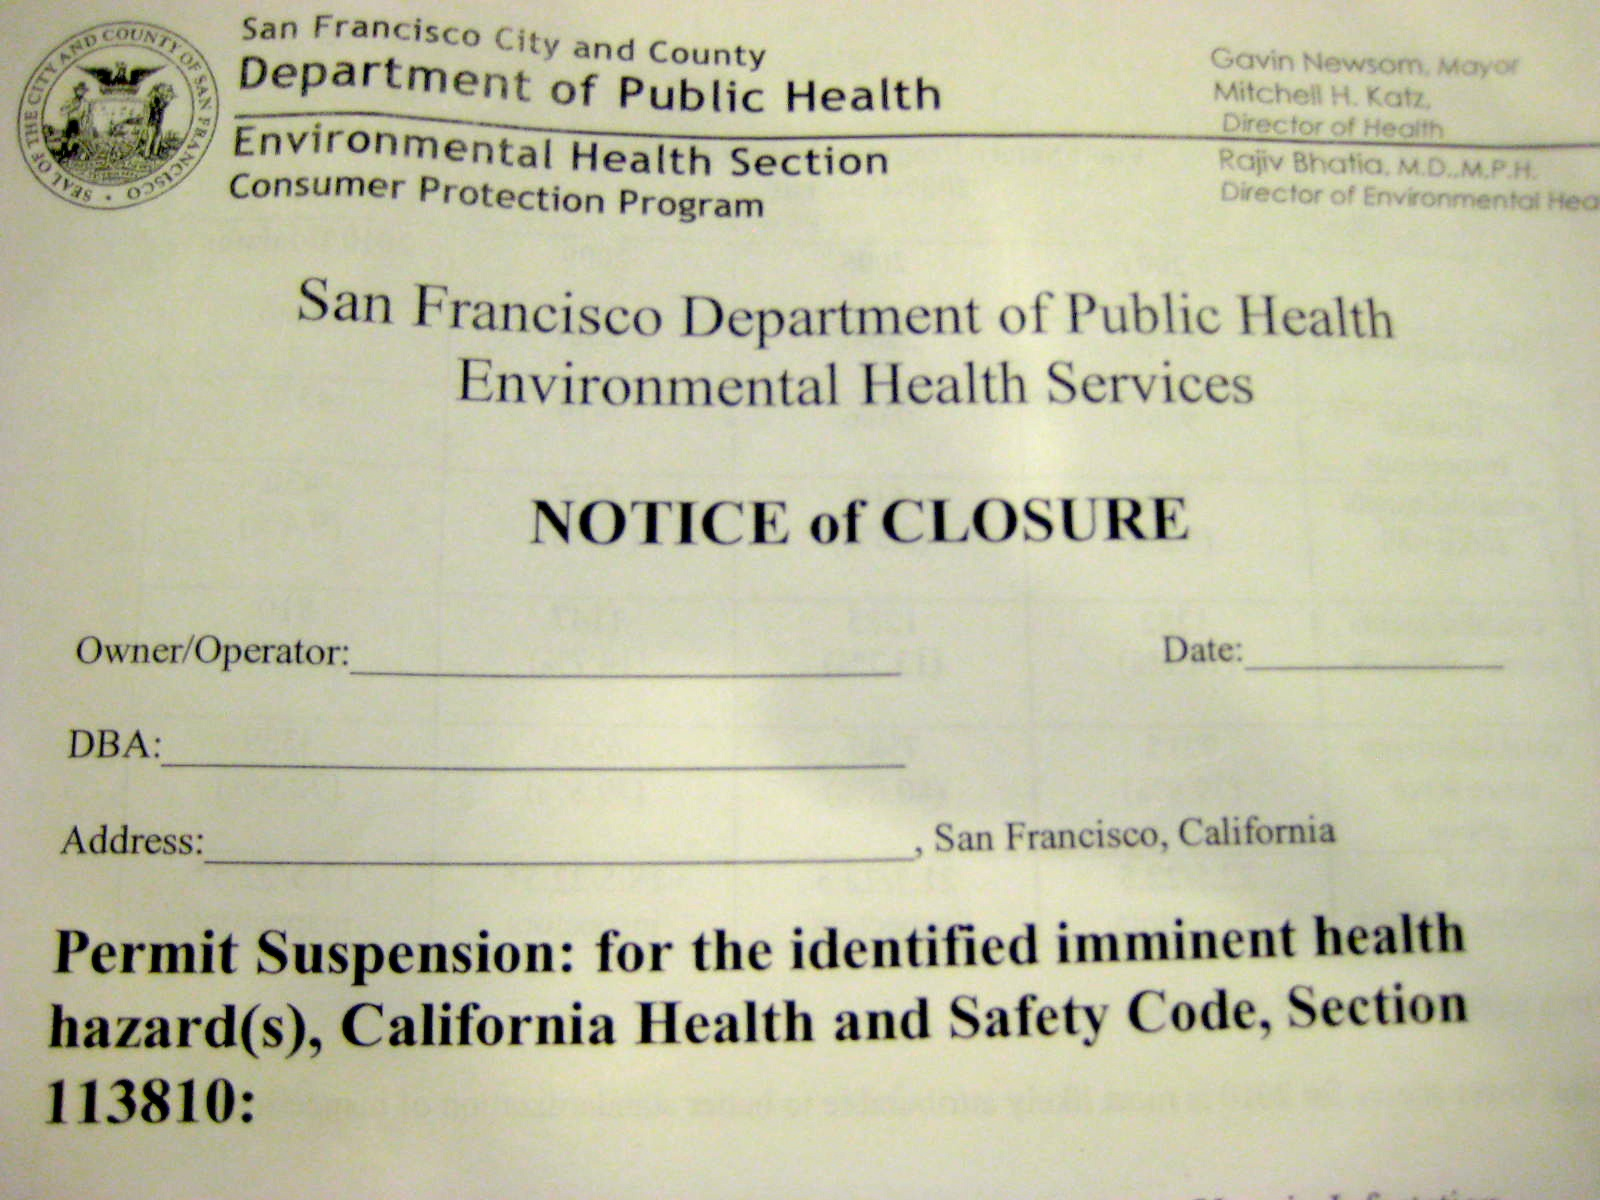 Health Department to Post Public Closure Notices, Support More Transparency on Scores